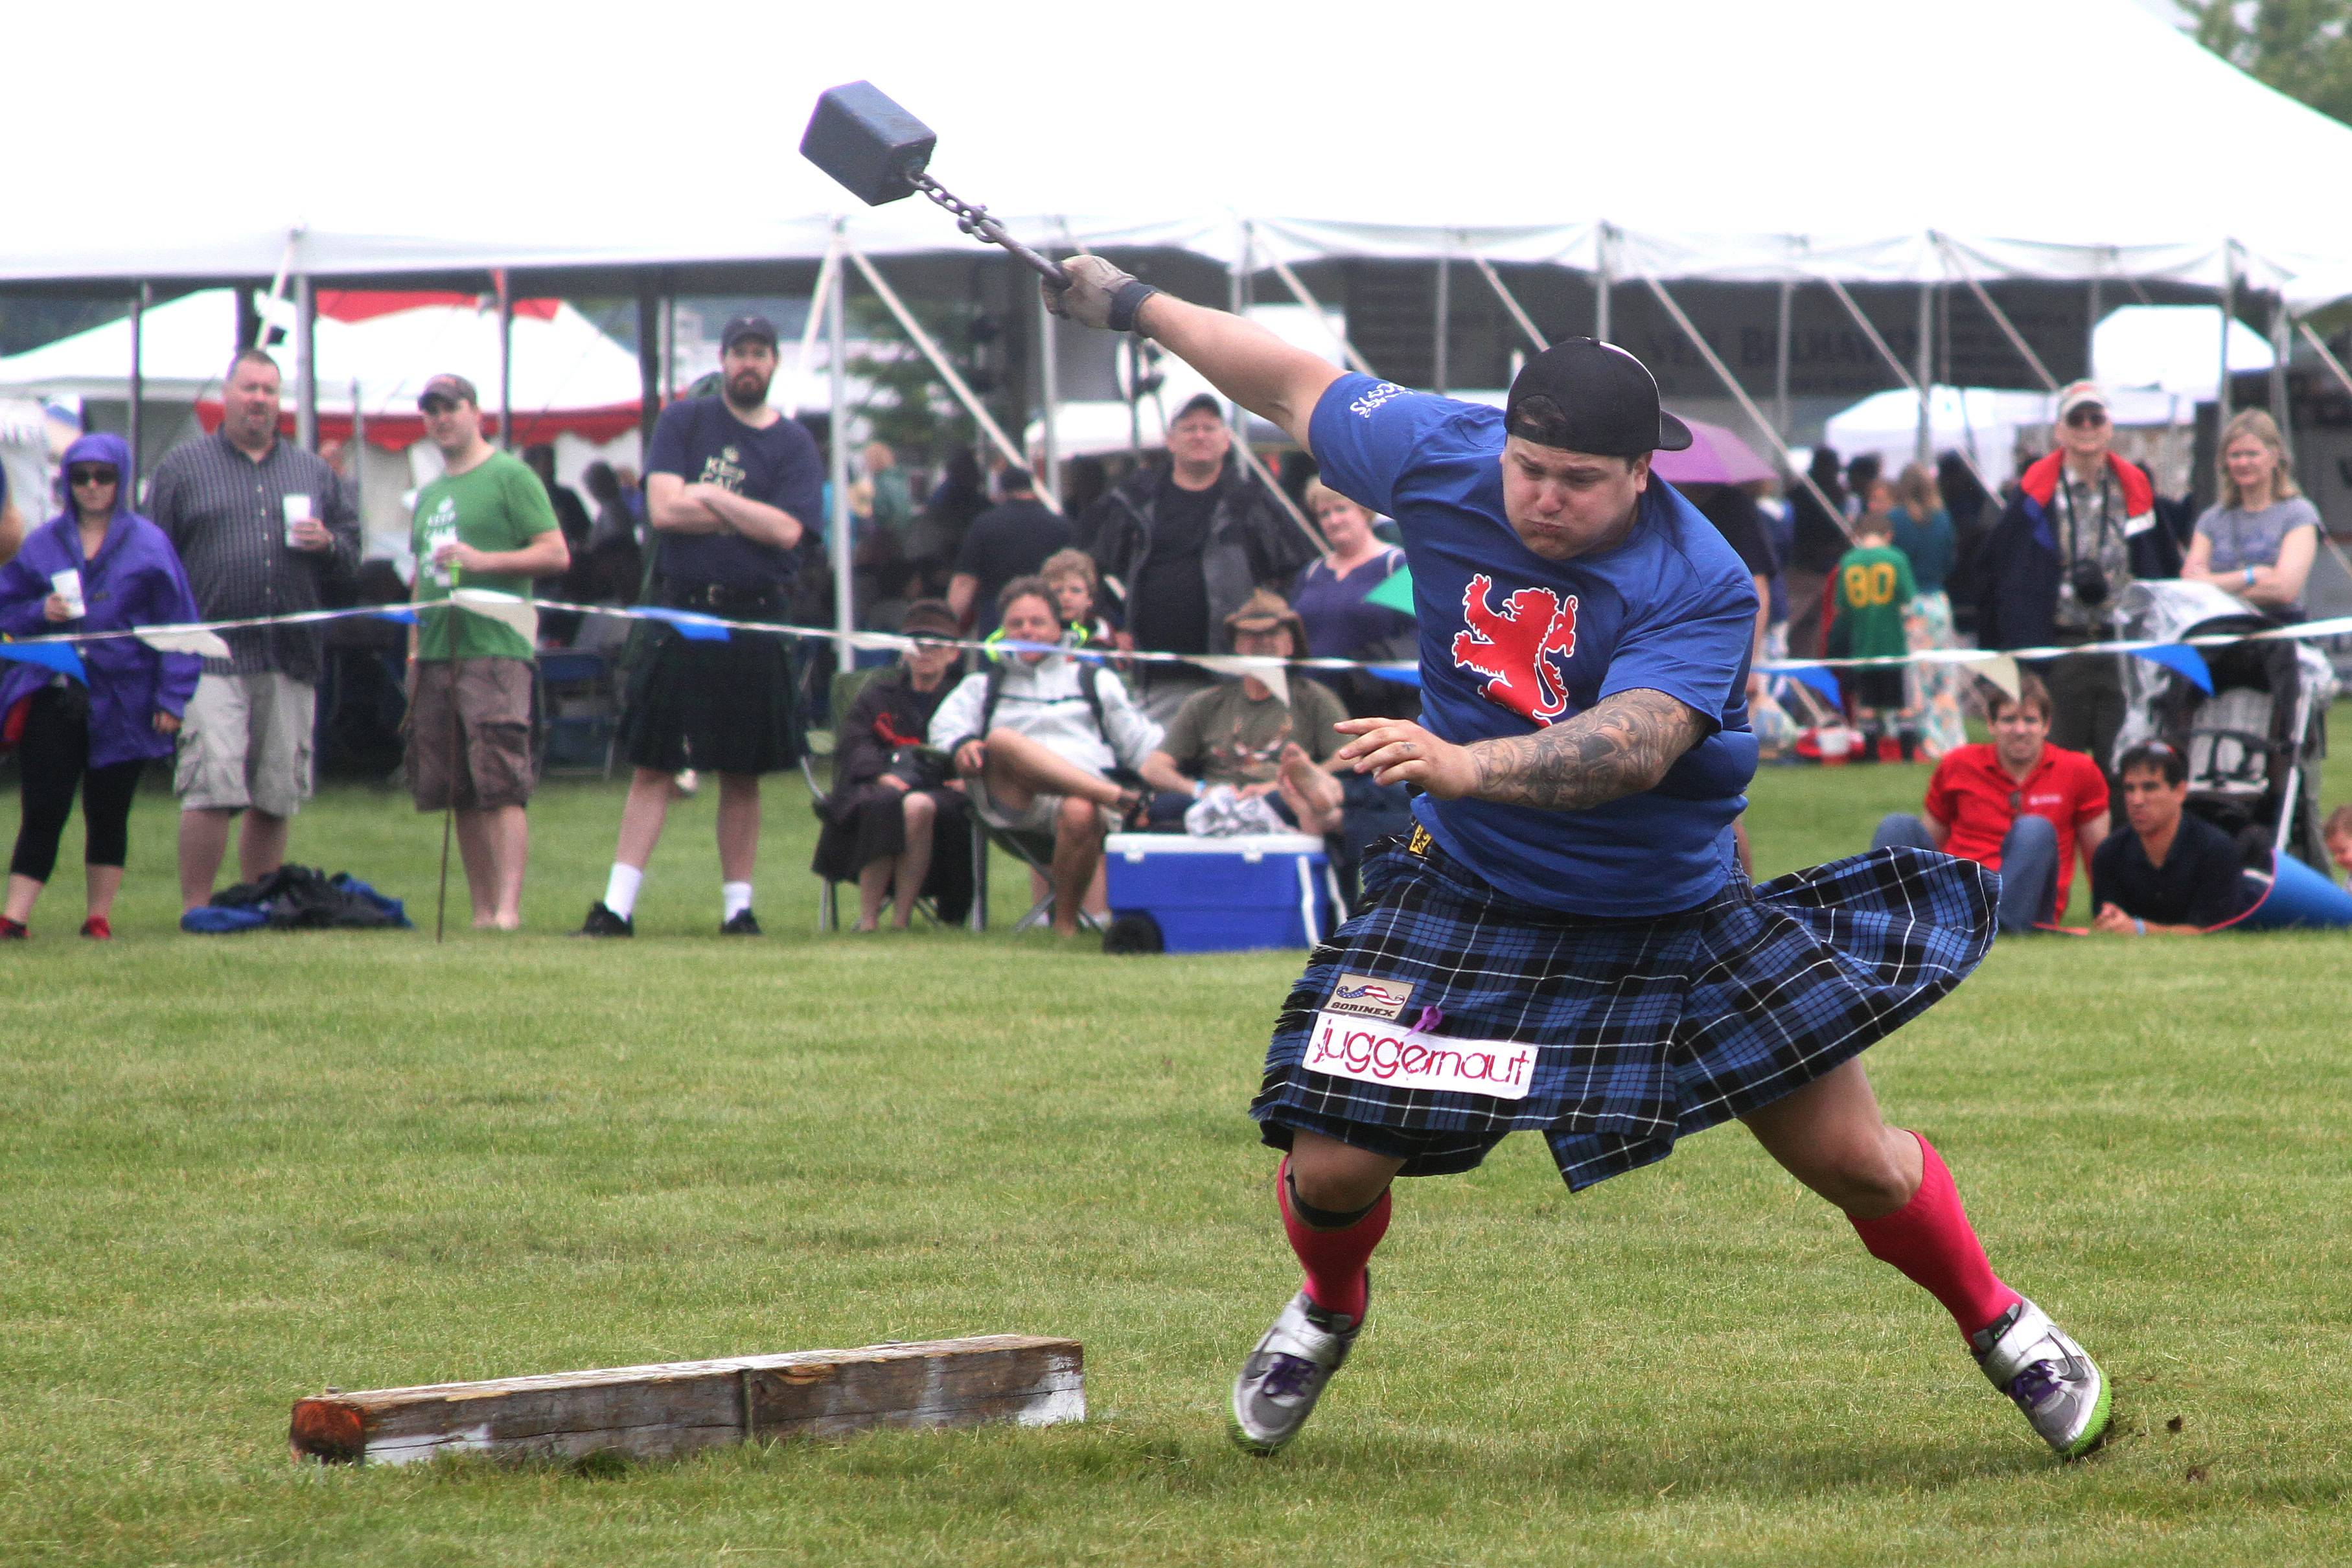 Proceeds from the Scottish Festival and Highland Games this weekend in Itasca will benefit the Scottish Home in North Riverside.